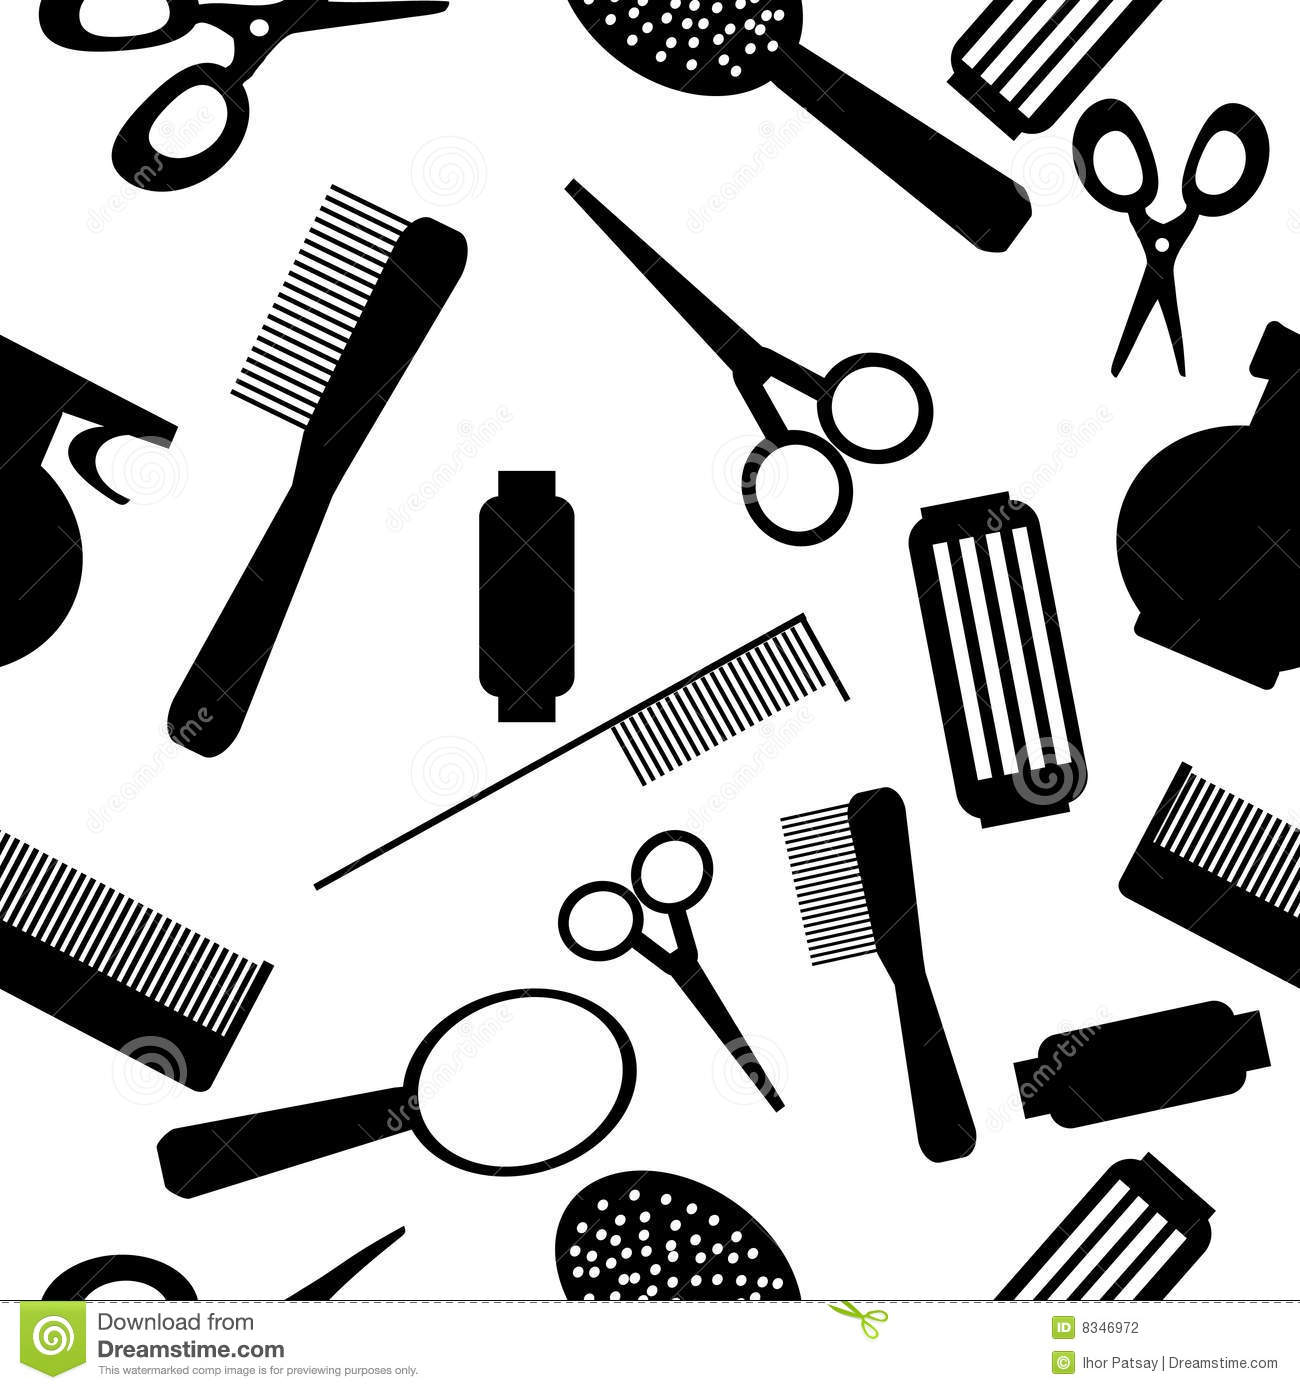 beauty shop clip art free - photo #36